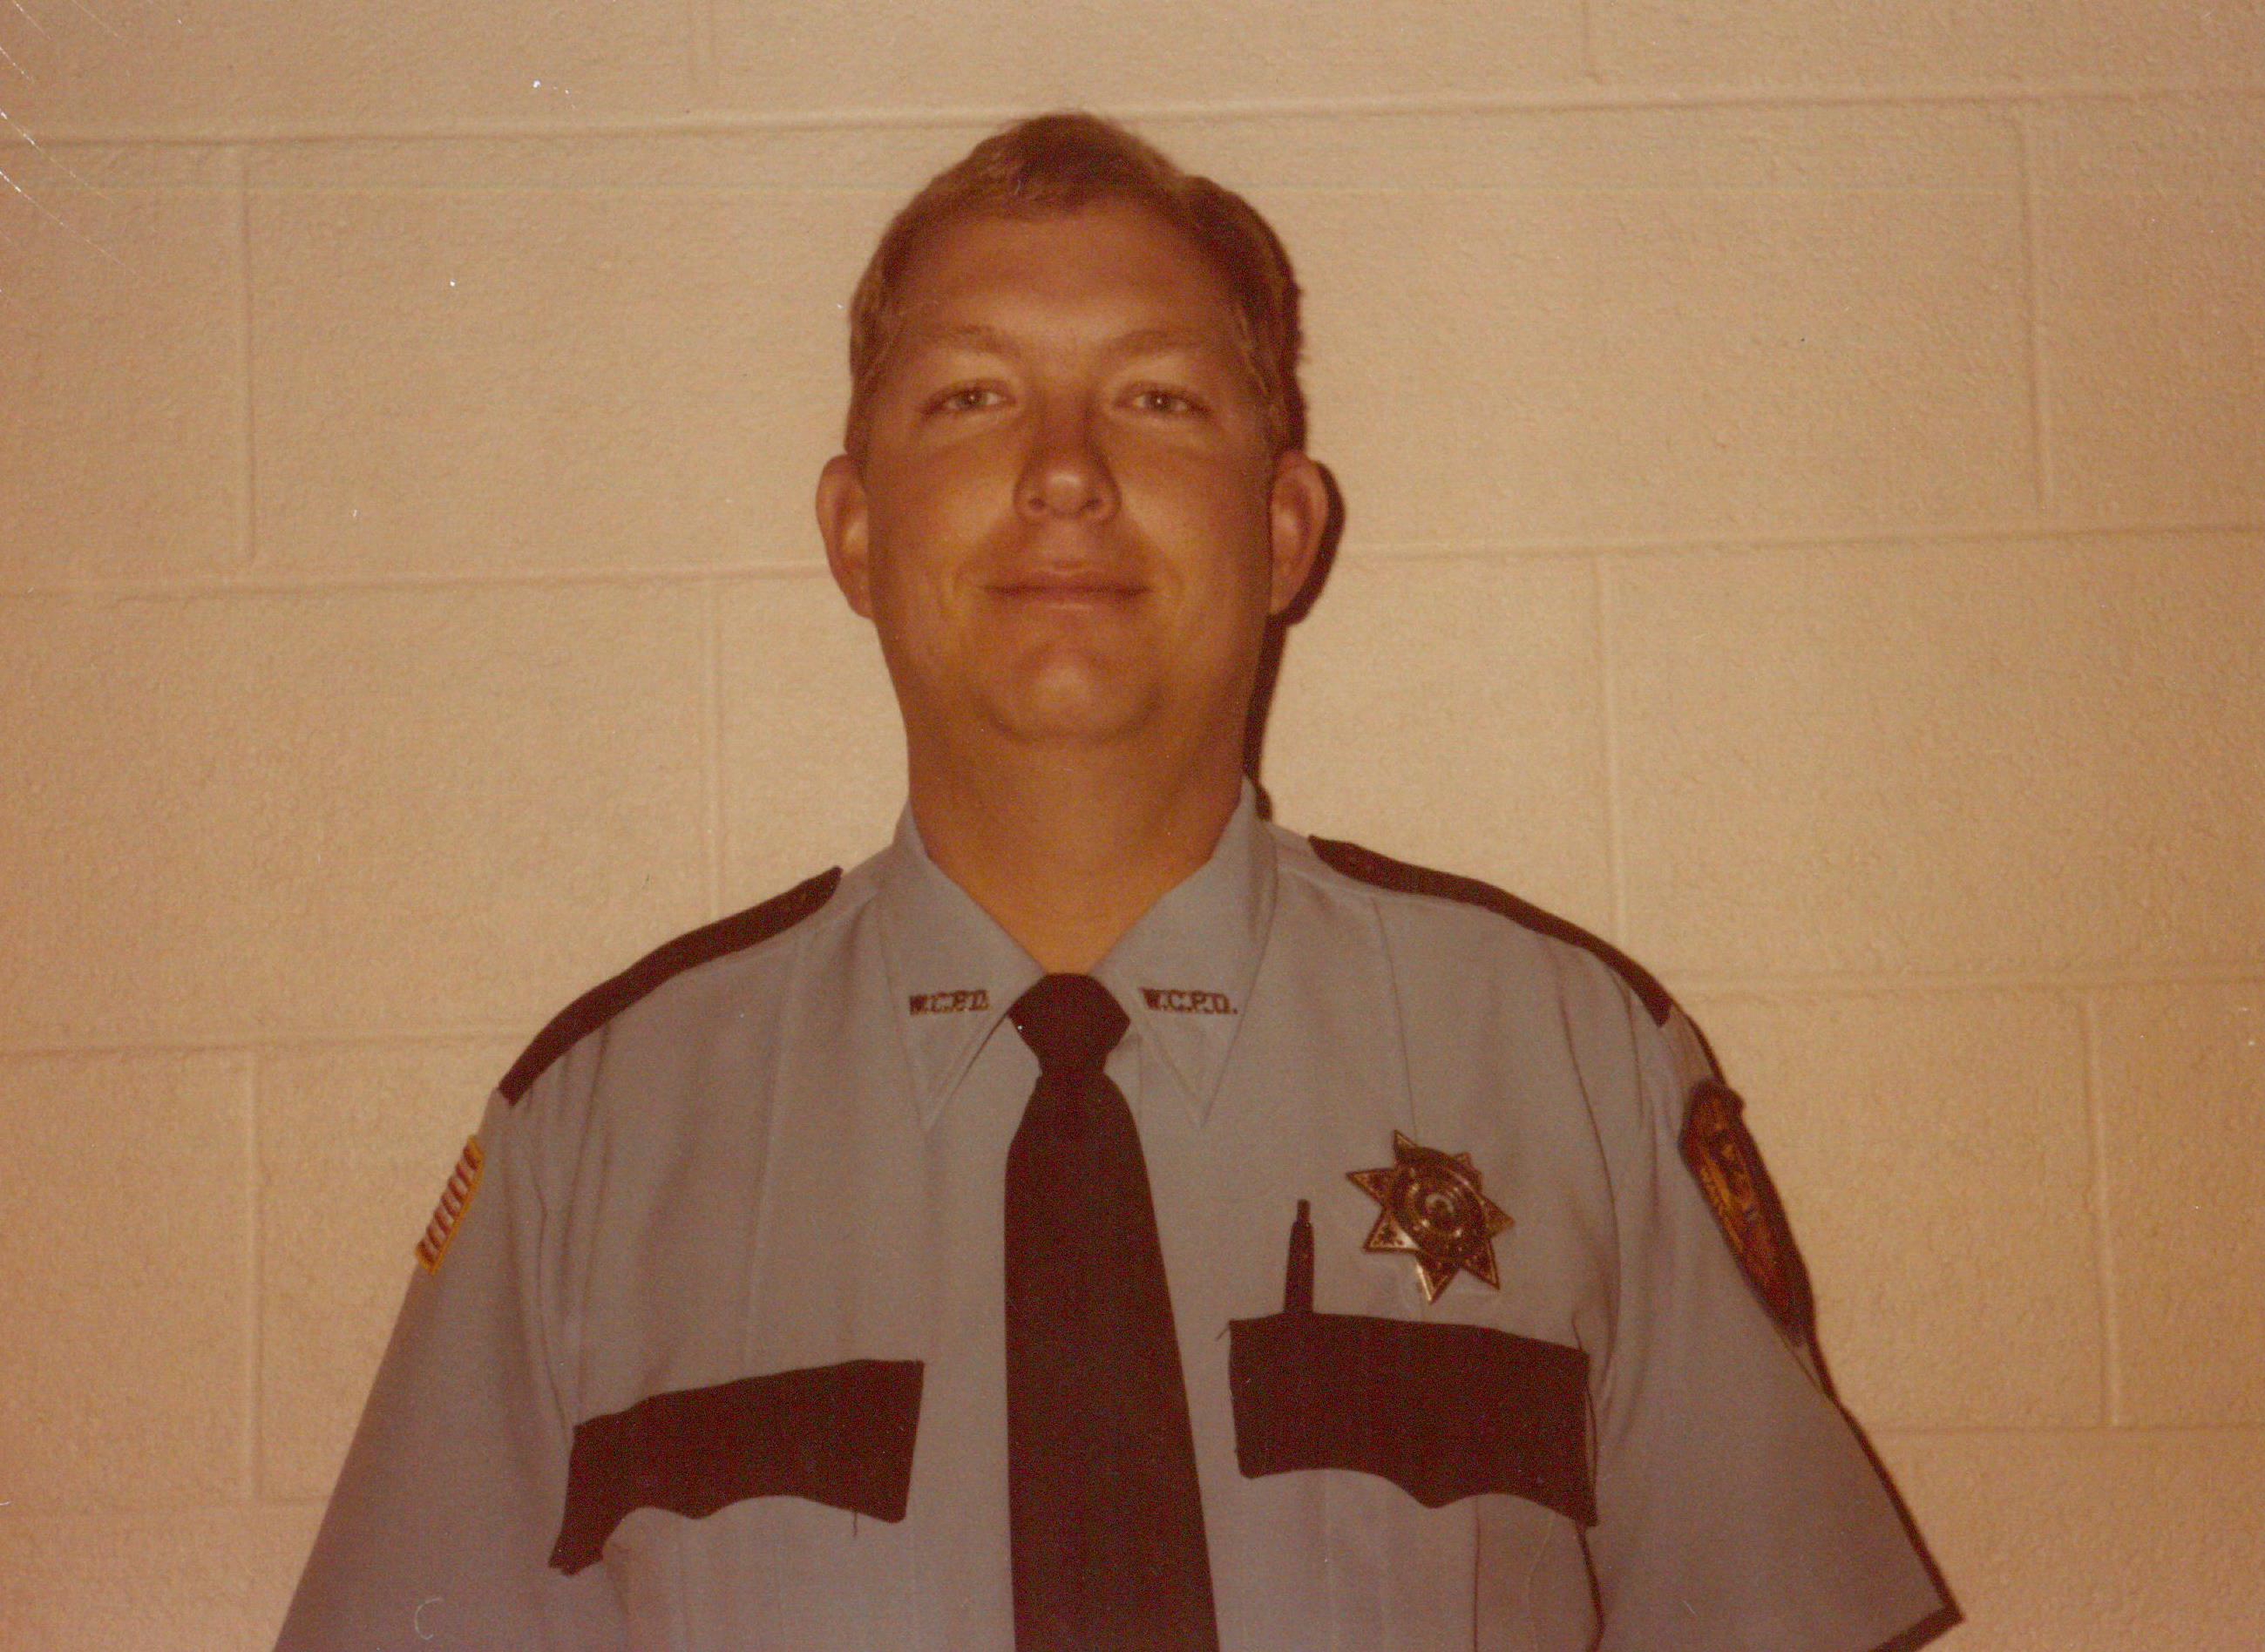 Senior Patrol Officer Keith Allen Braddock | Watford City Police Department, North Dakota